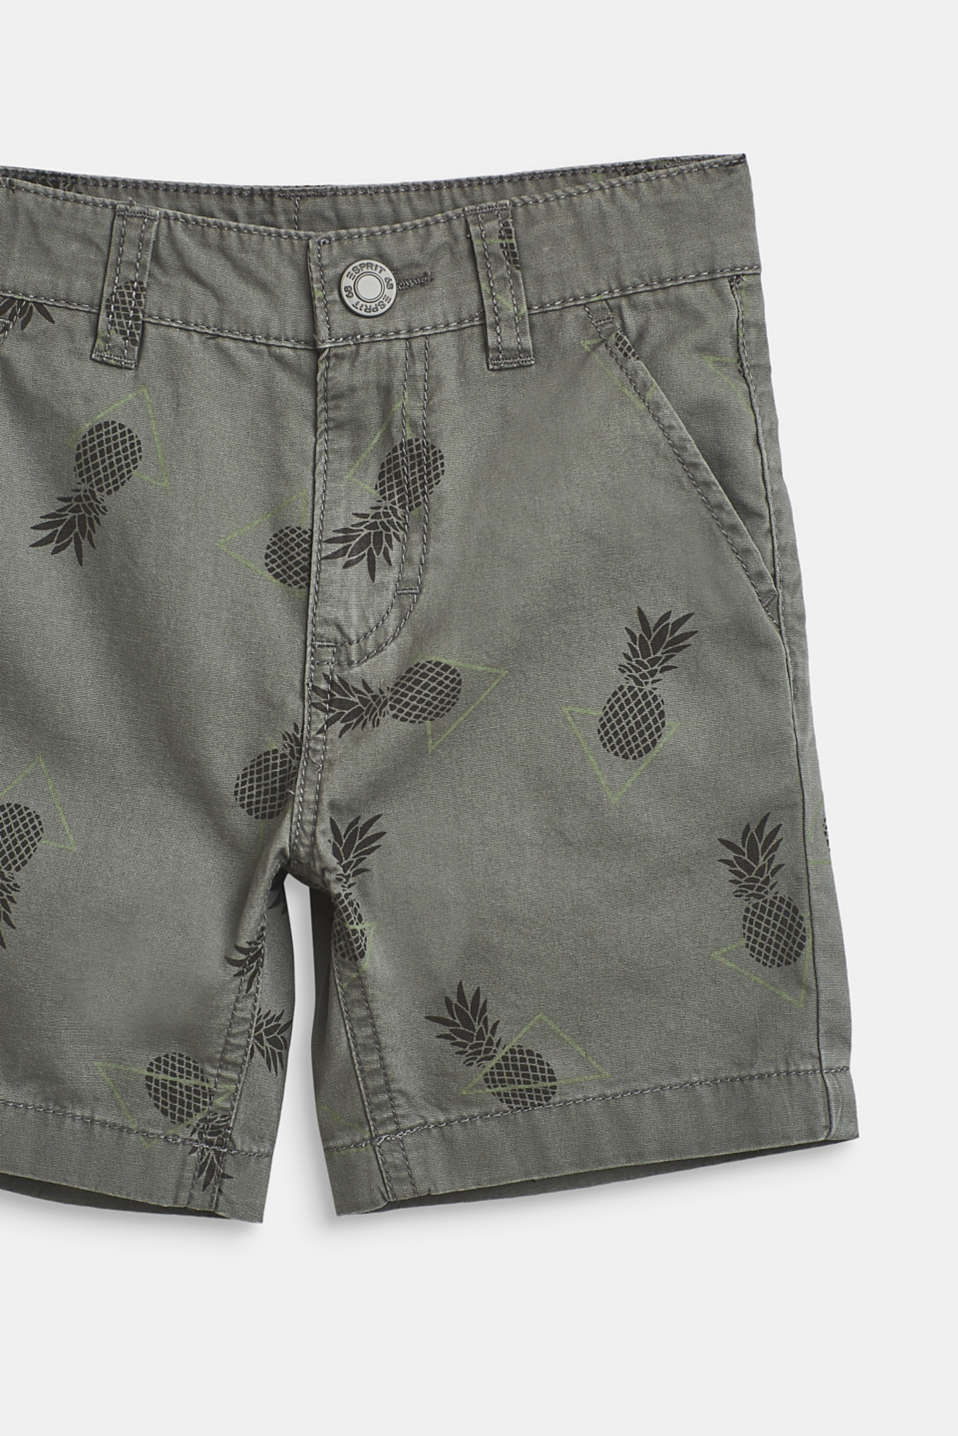 Pineapple print shorts, 100% cotton, LIGHT KHAKI, detail image number 1